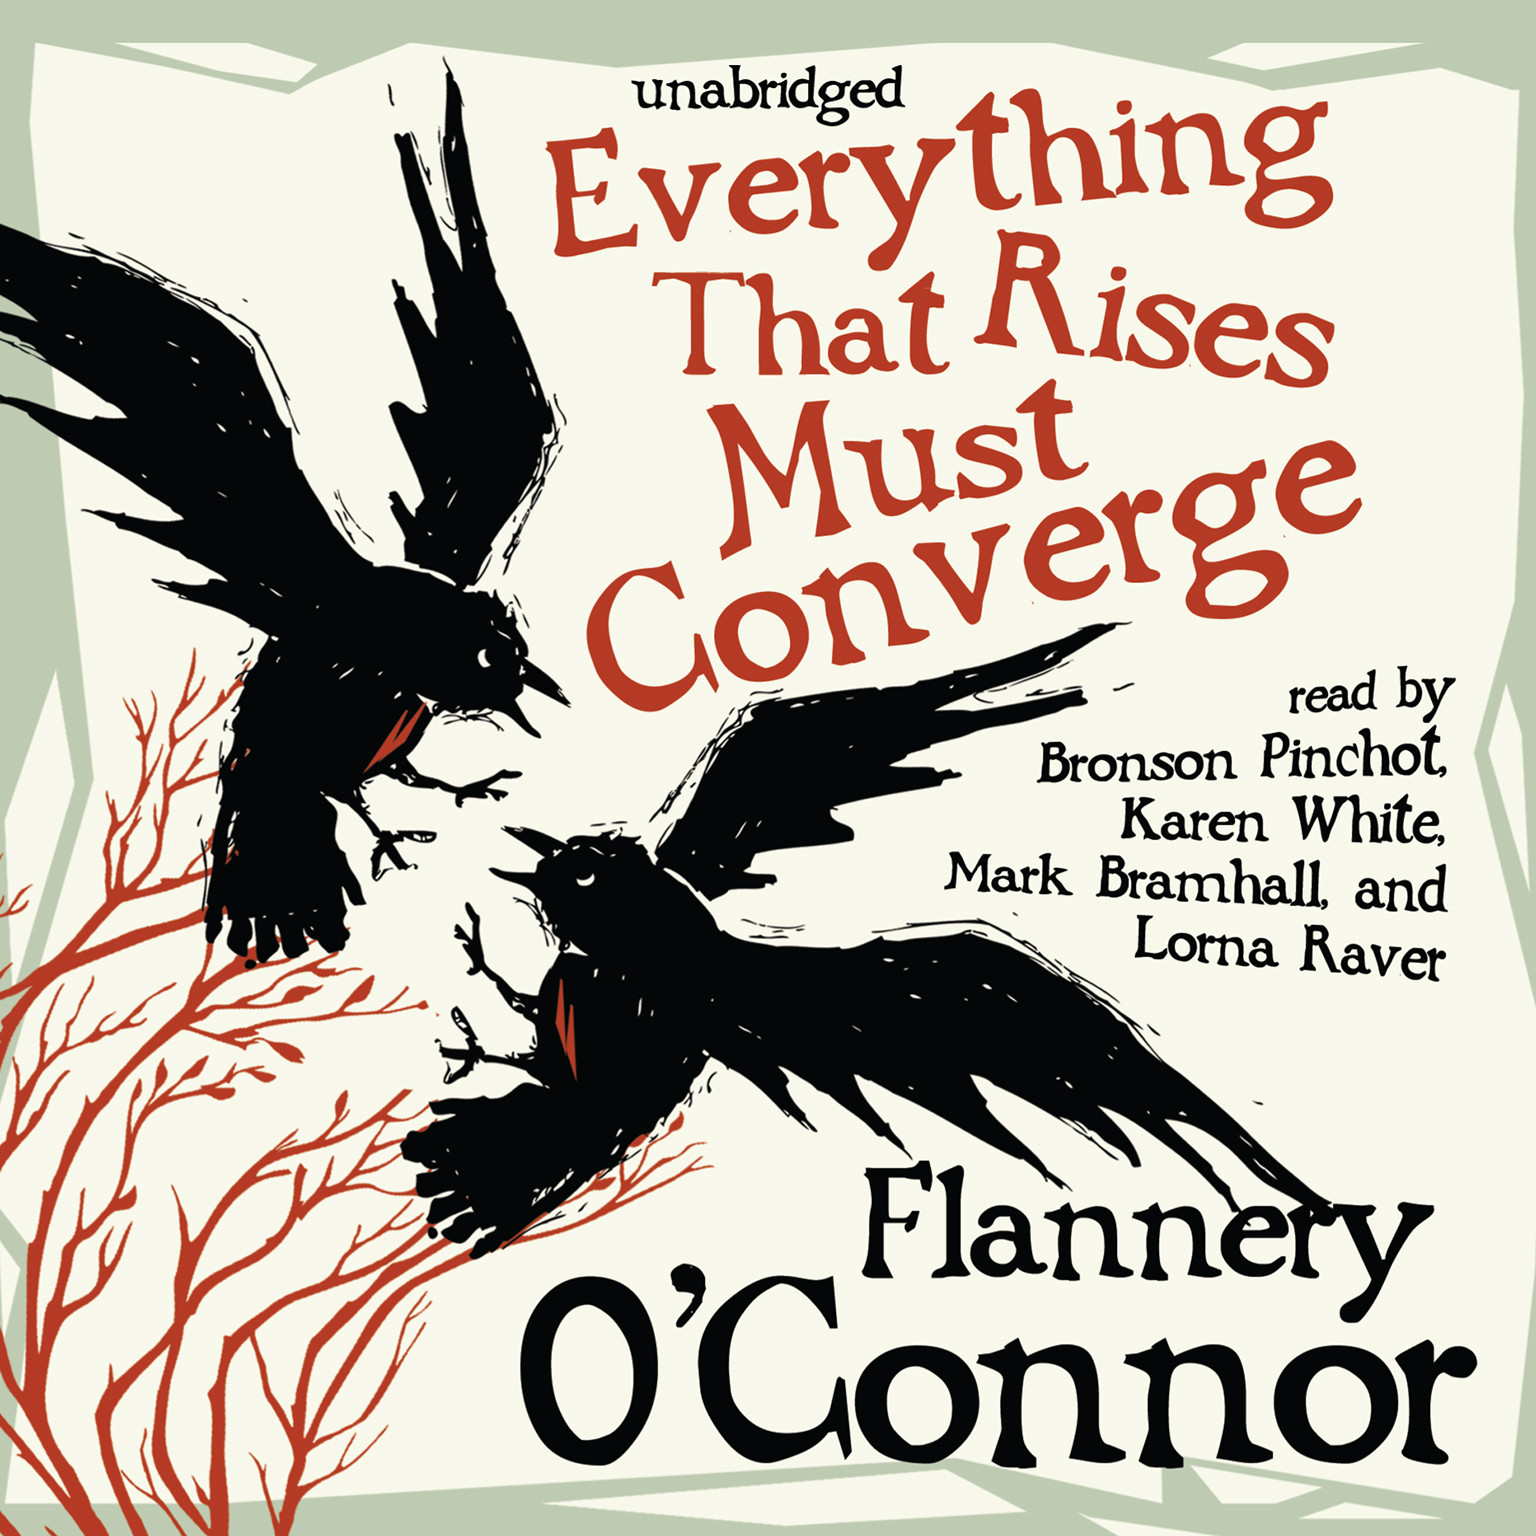 flannery o connor essay hear everything that rises must converge  hear everything that rises must converge audiobook by flannery o extended audio sample everything that rises